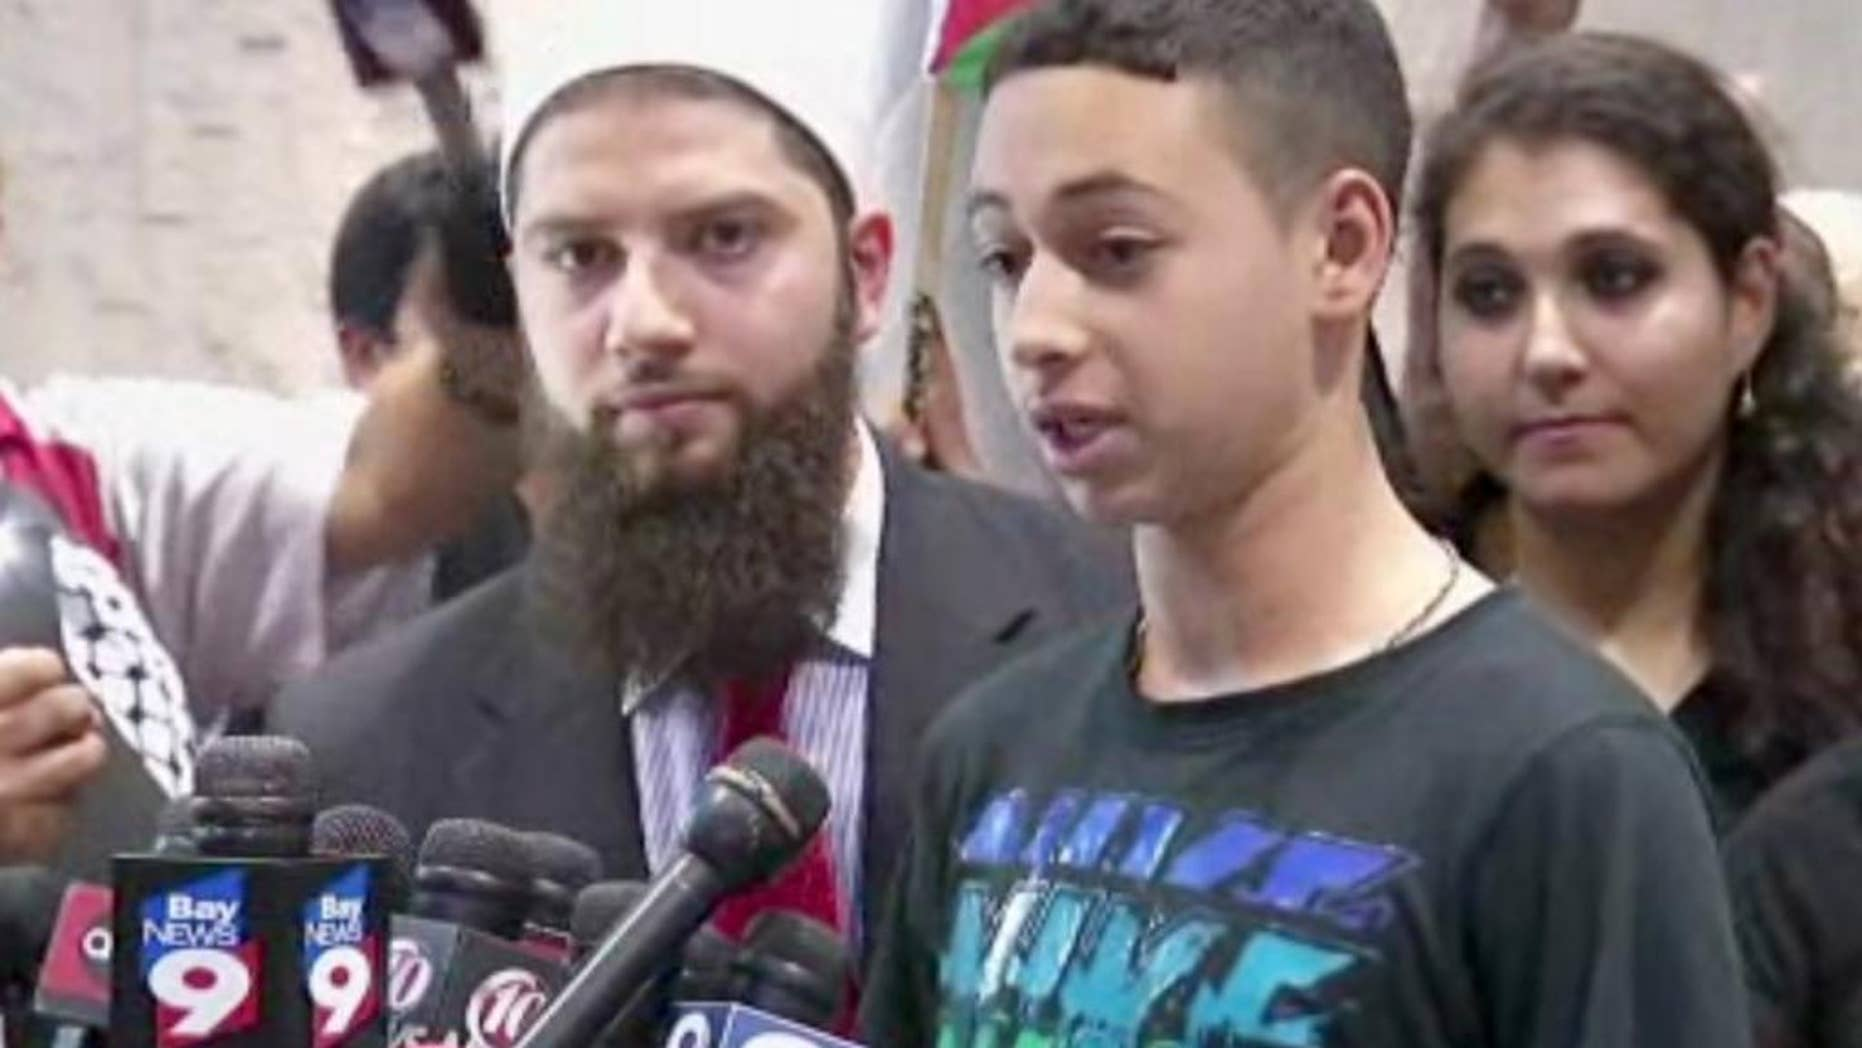 This image from an AP video shows Tariq Abu Khdeir, the Palestinian-American teen who relatives allege was beaten by Israeli authorities earlier this month addressing the media after arriving at at Tampa International Airport on Wednesday night, July 16, 2014, in Tampa, Fla. (AP Photo/AP Video)